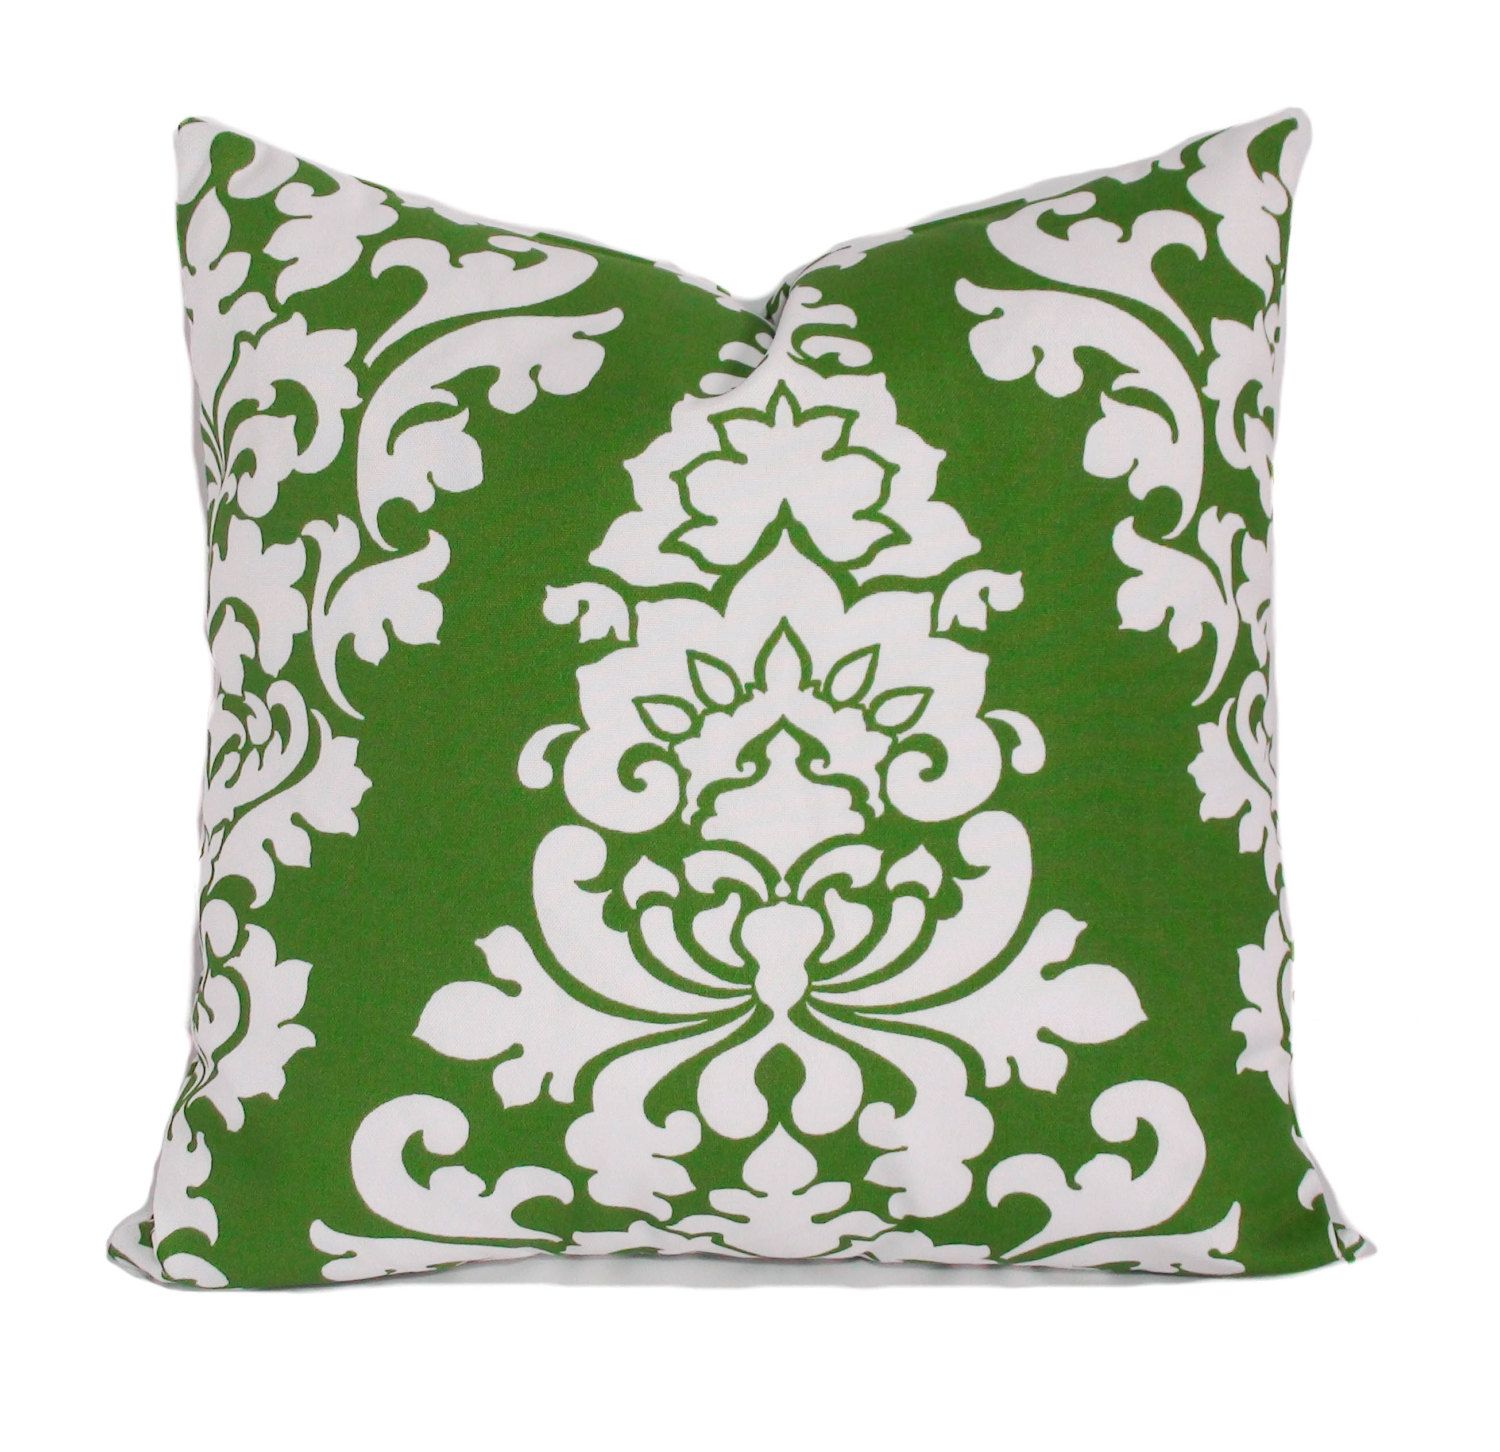 outdoor holiday pillow cover 18x18 outdoor christmas pillows green pillow decorative pillow